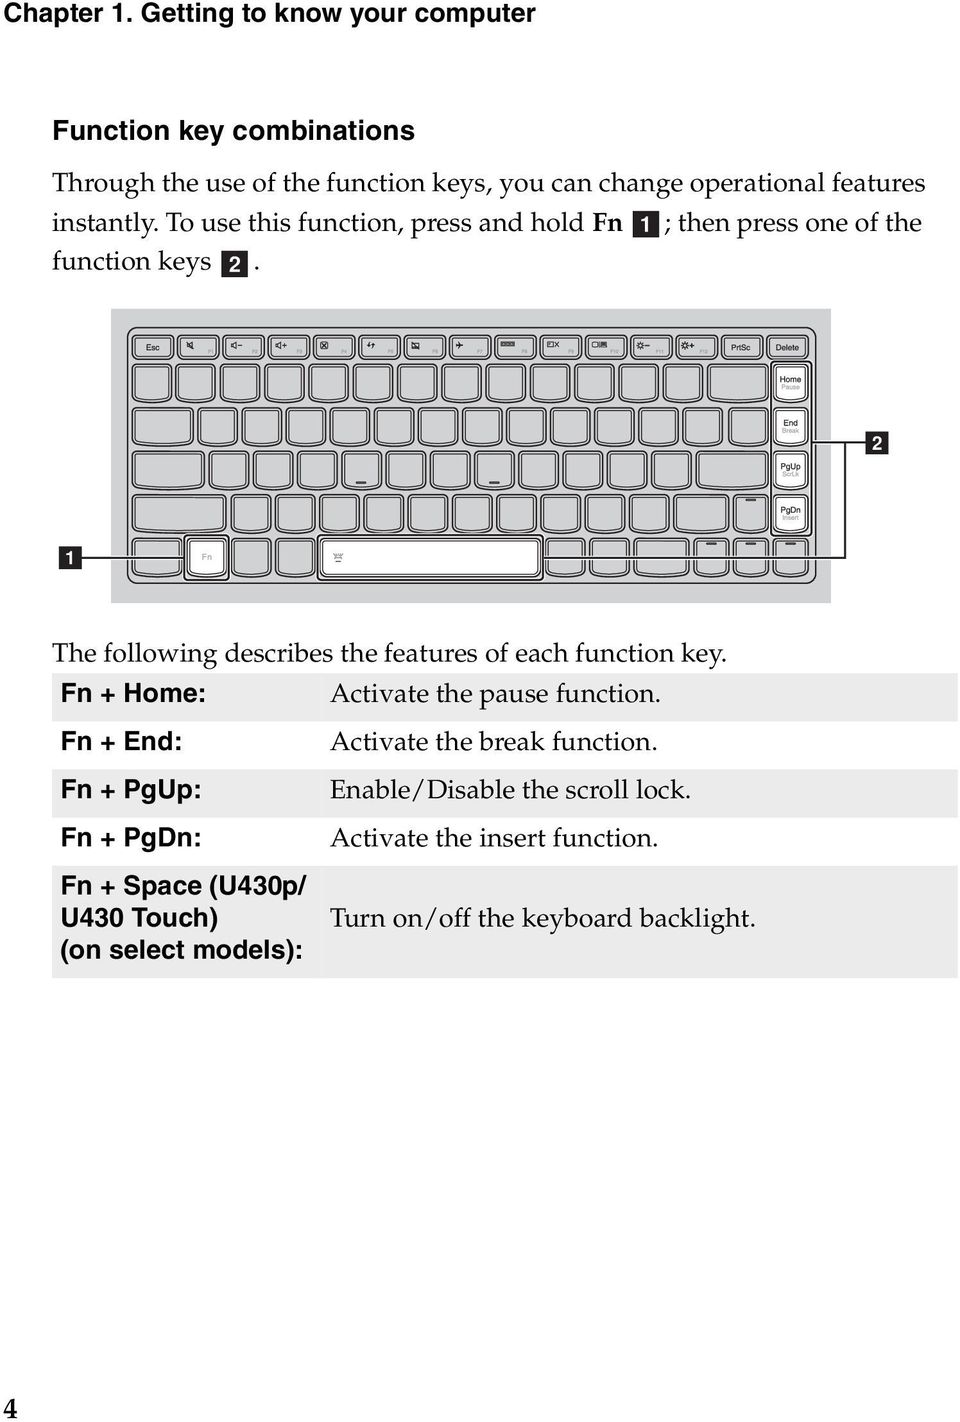 instantly. To use this function, press and hold Fn a; then press one of the function keys b.